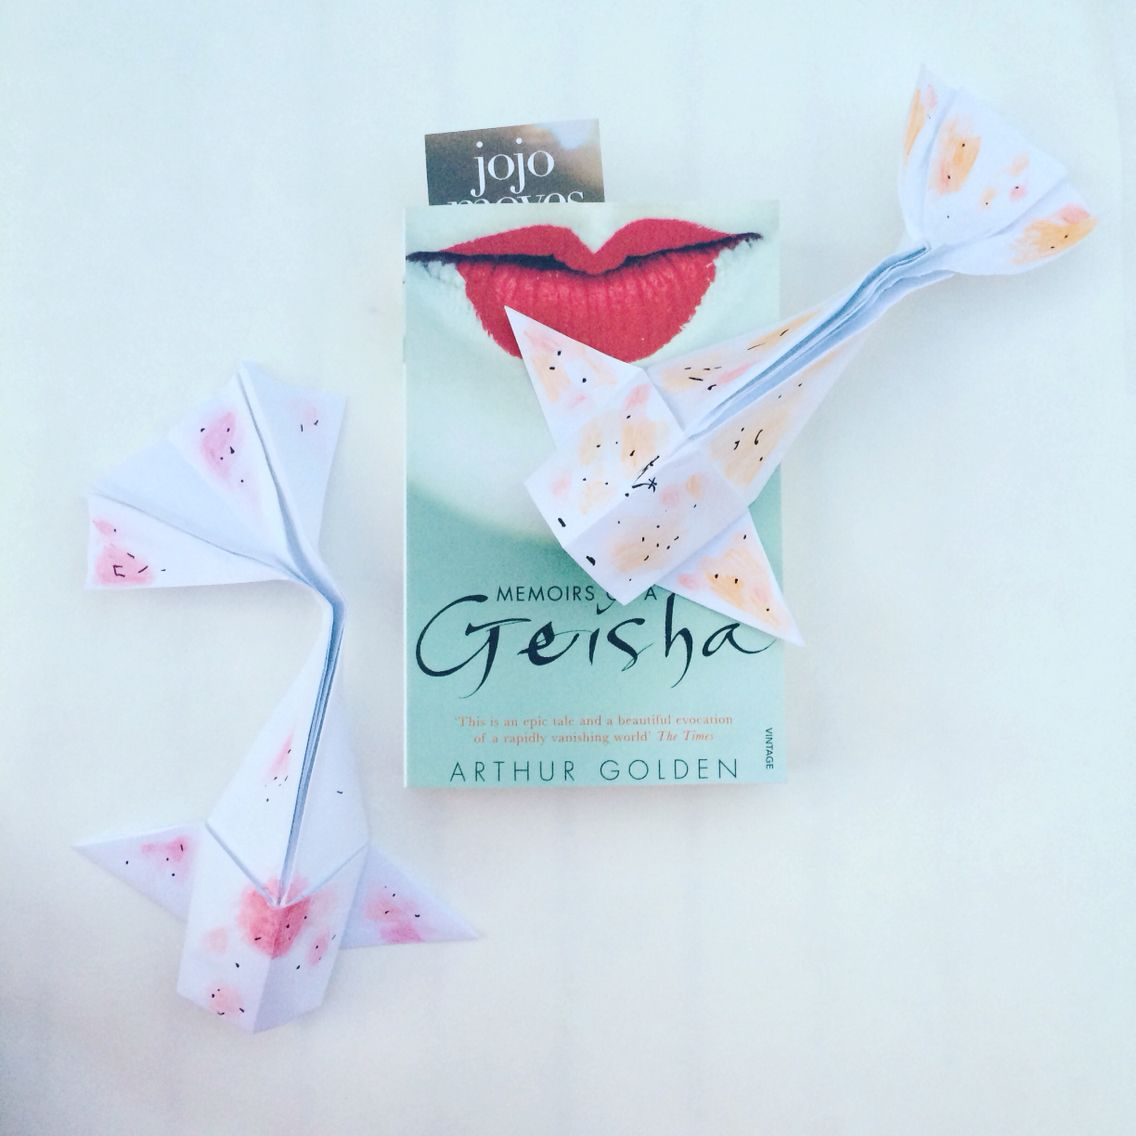 Japan Inspired Day With My Origami Koi Fish And Favourite Book Diagram